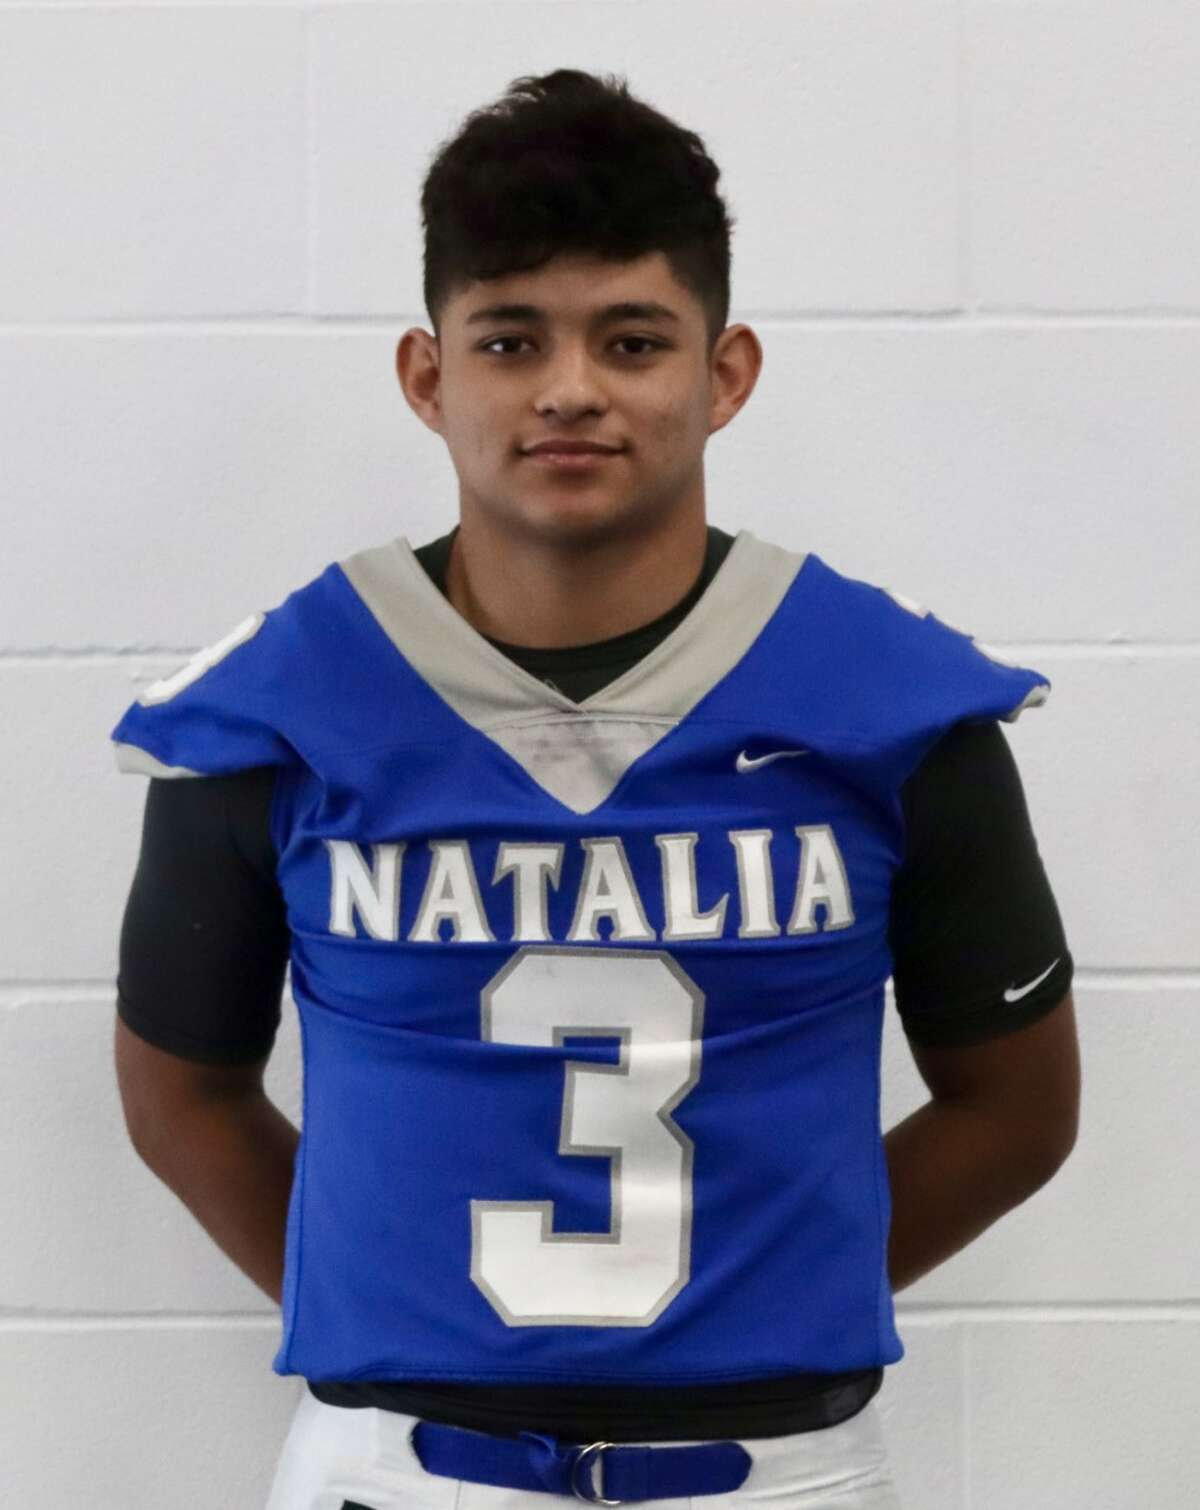 Adrian Vasquez is a linebacker and running back for Natalia.